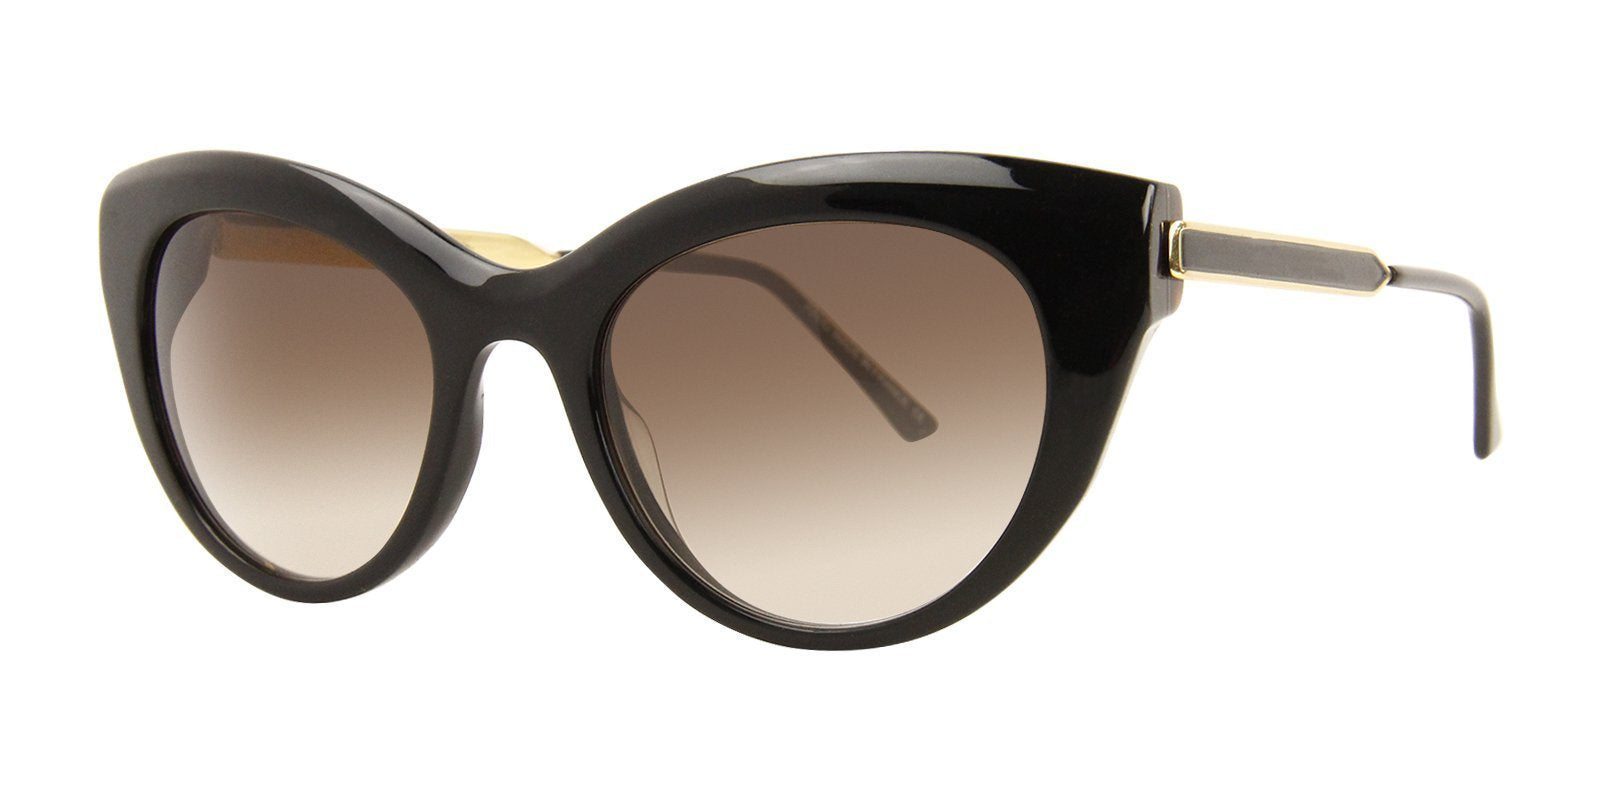 Thierry Lasry - Diamondy Black Cat-Eye Women Sunglasses - 53mm-Sunglasses-Designer Eyes